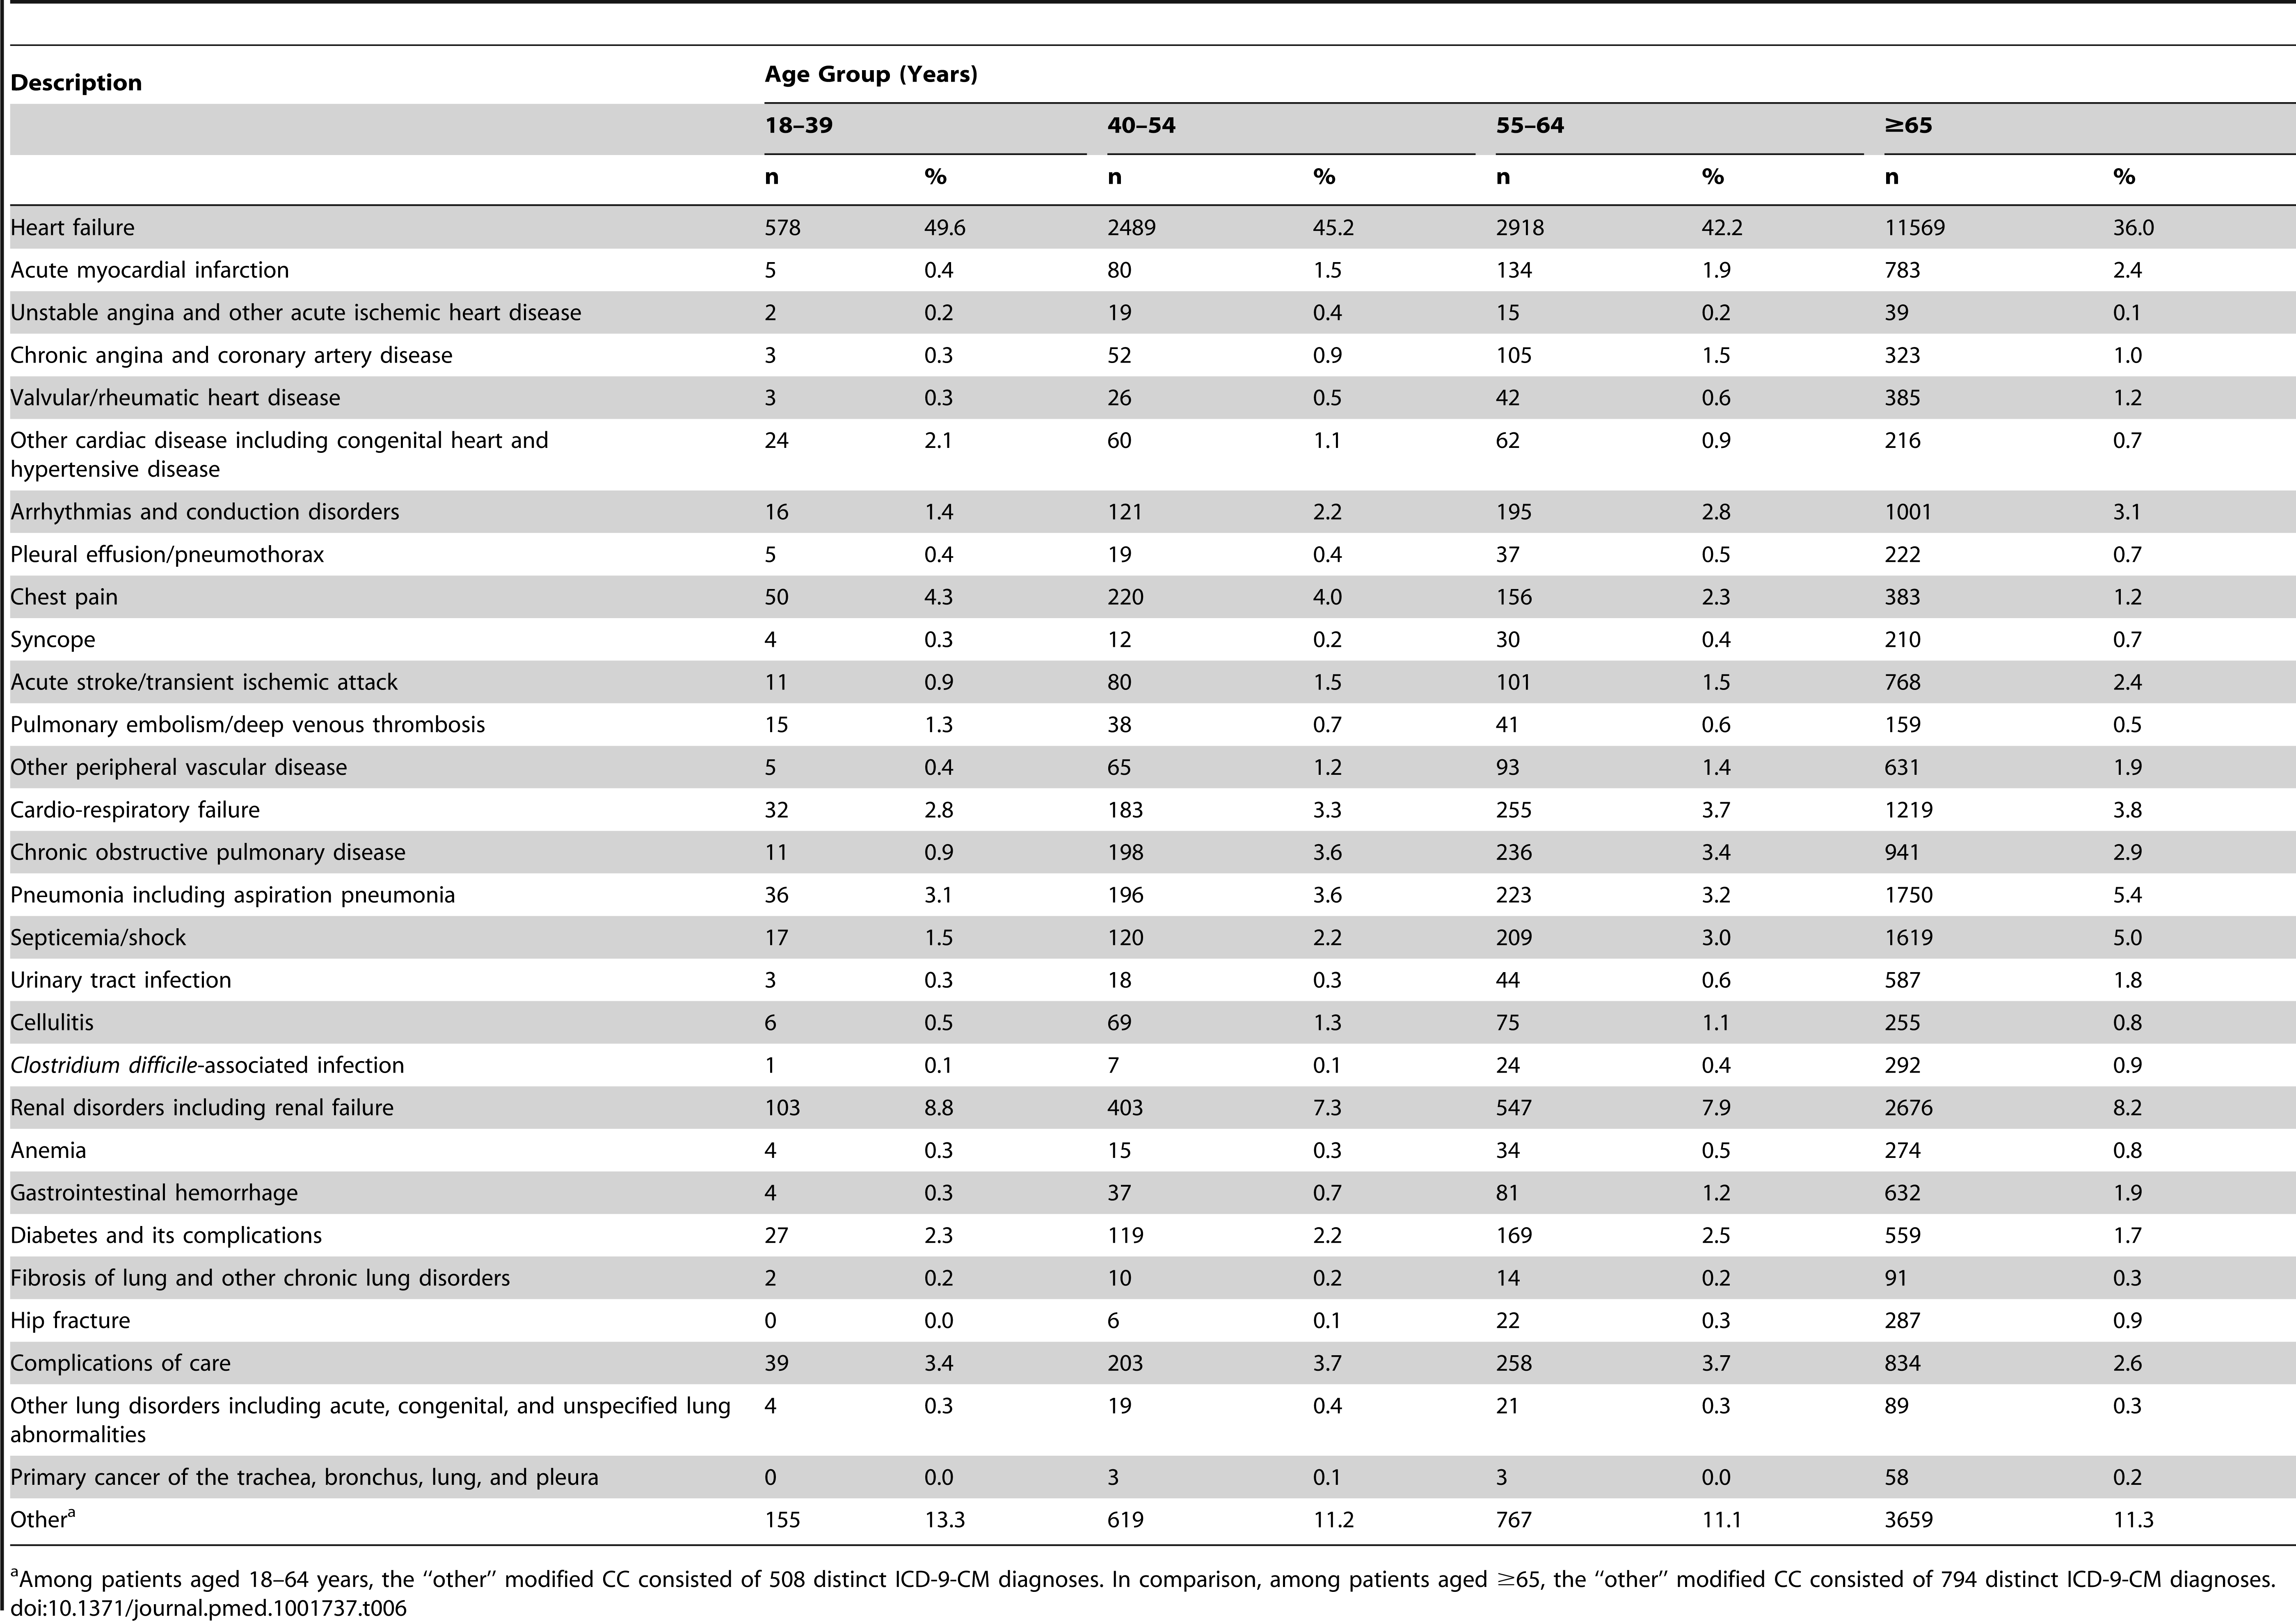 Principal readmission diagnosis within 30 days by modified condition categories among patients with an index hospitalization for heart failure.